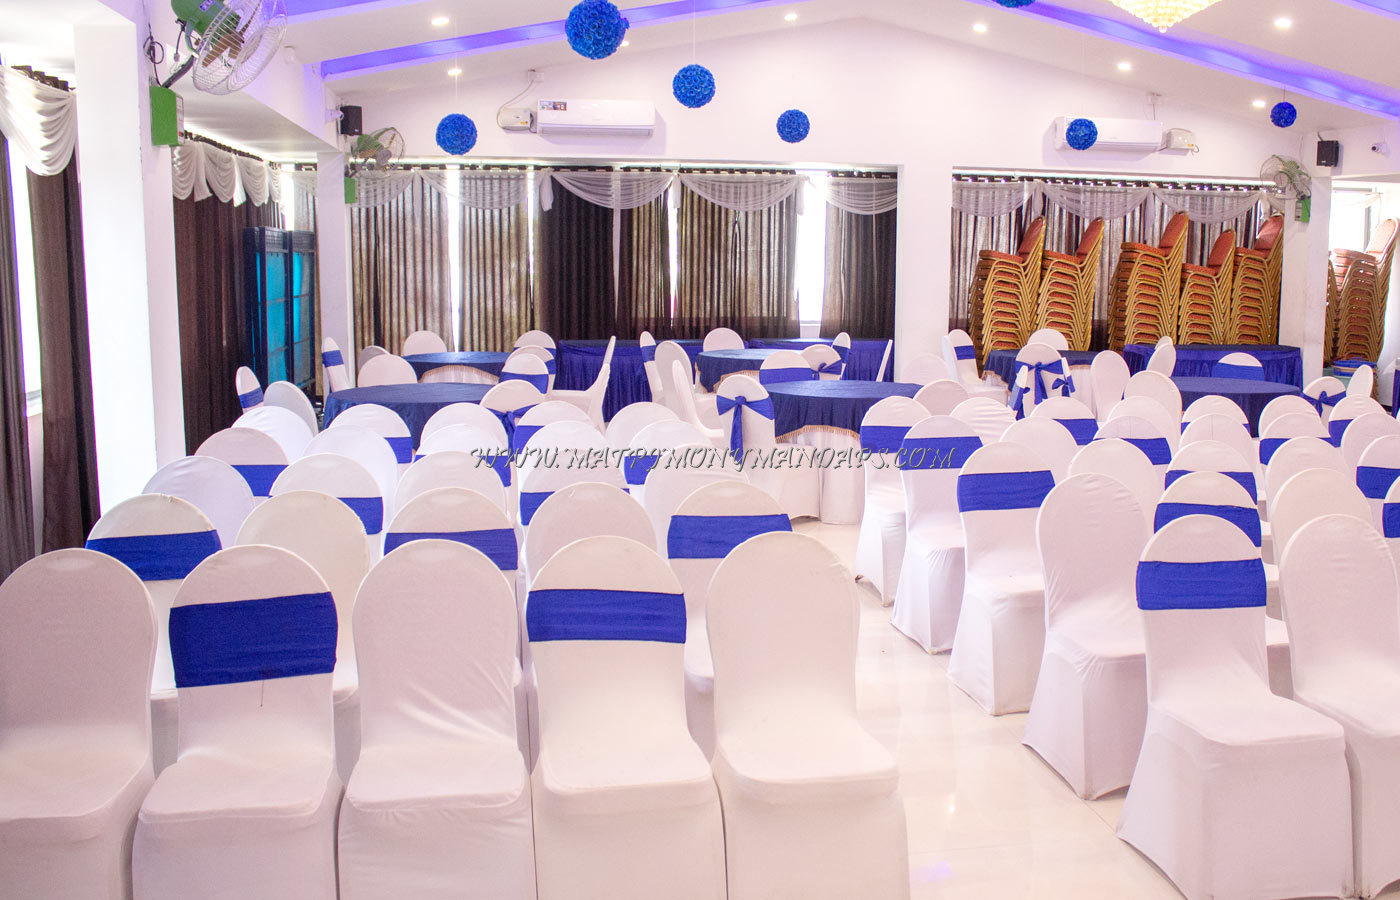 Find the availability of the Blue Pearl Luxury Banquet Hall (A/C) in RT Nagar, Bangalore and avail special offers